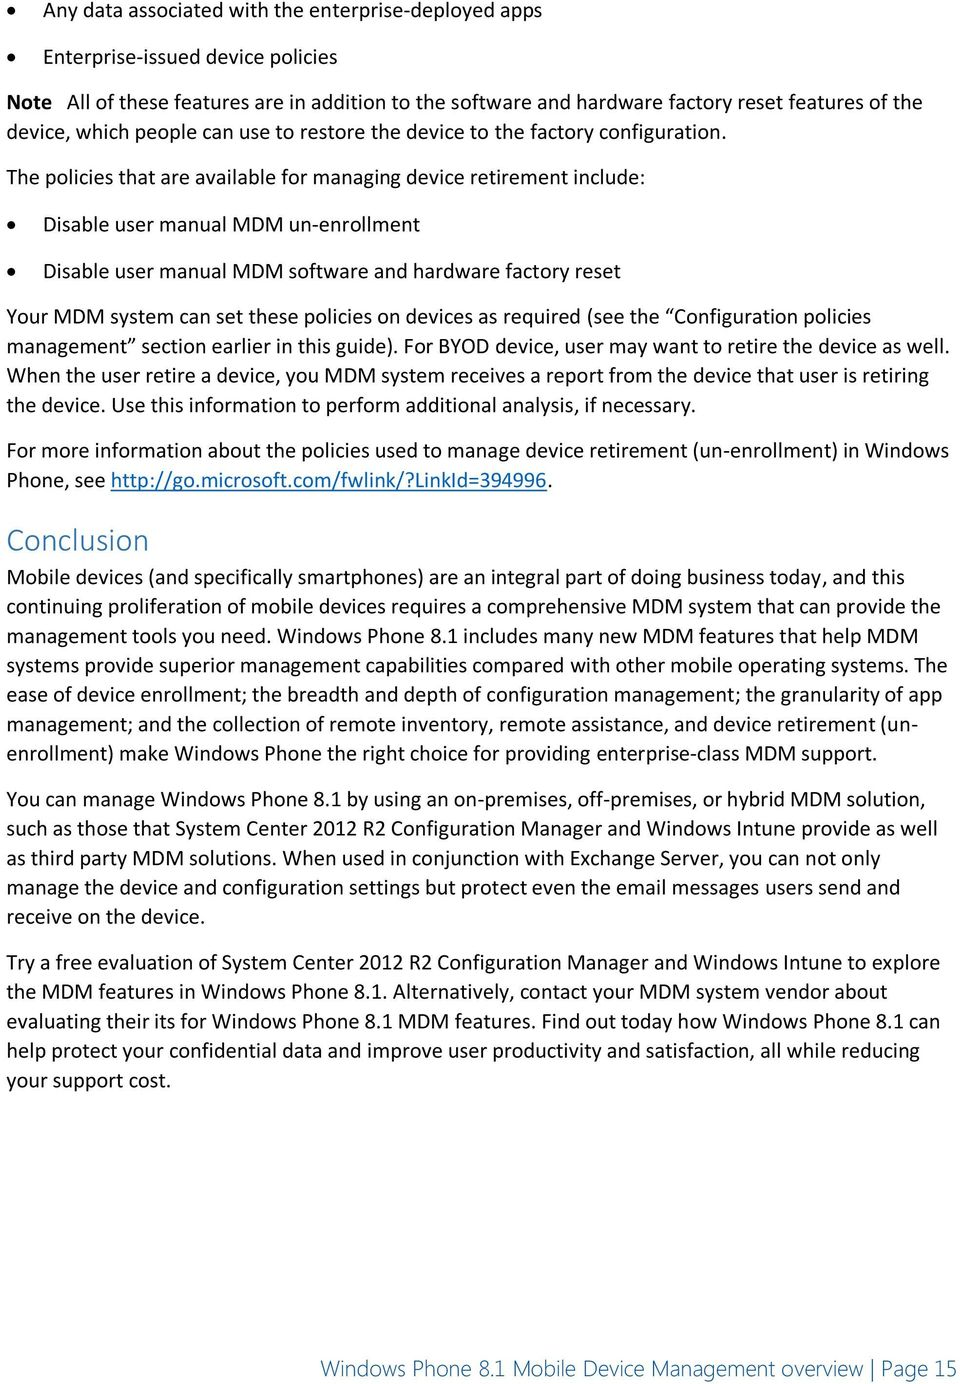 Windows Phone 8 1 Mobile Device Management Overview - PDF